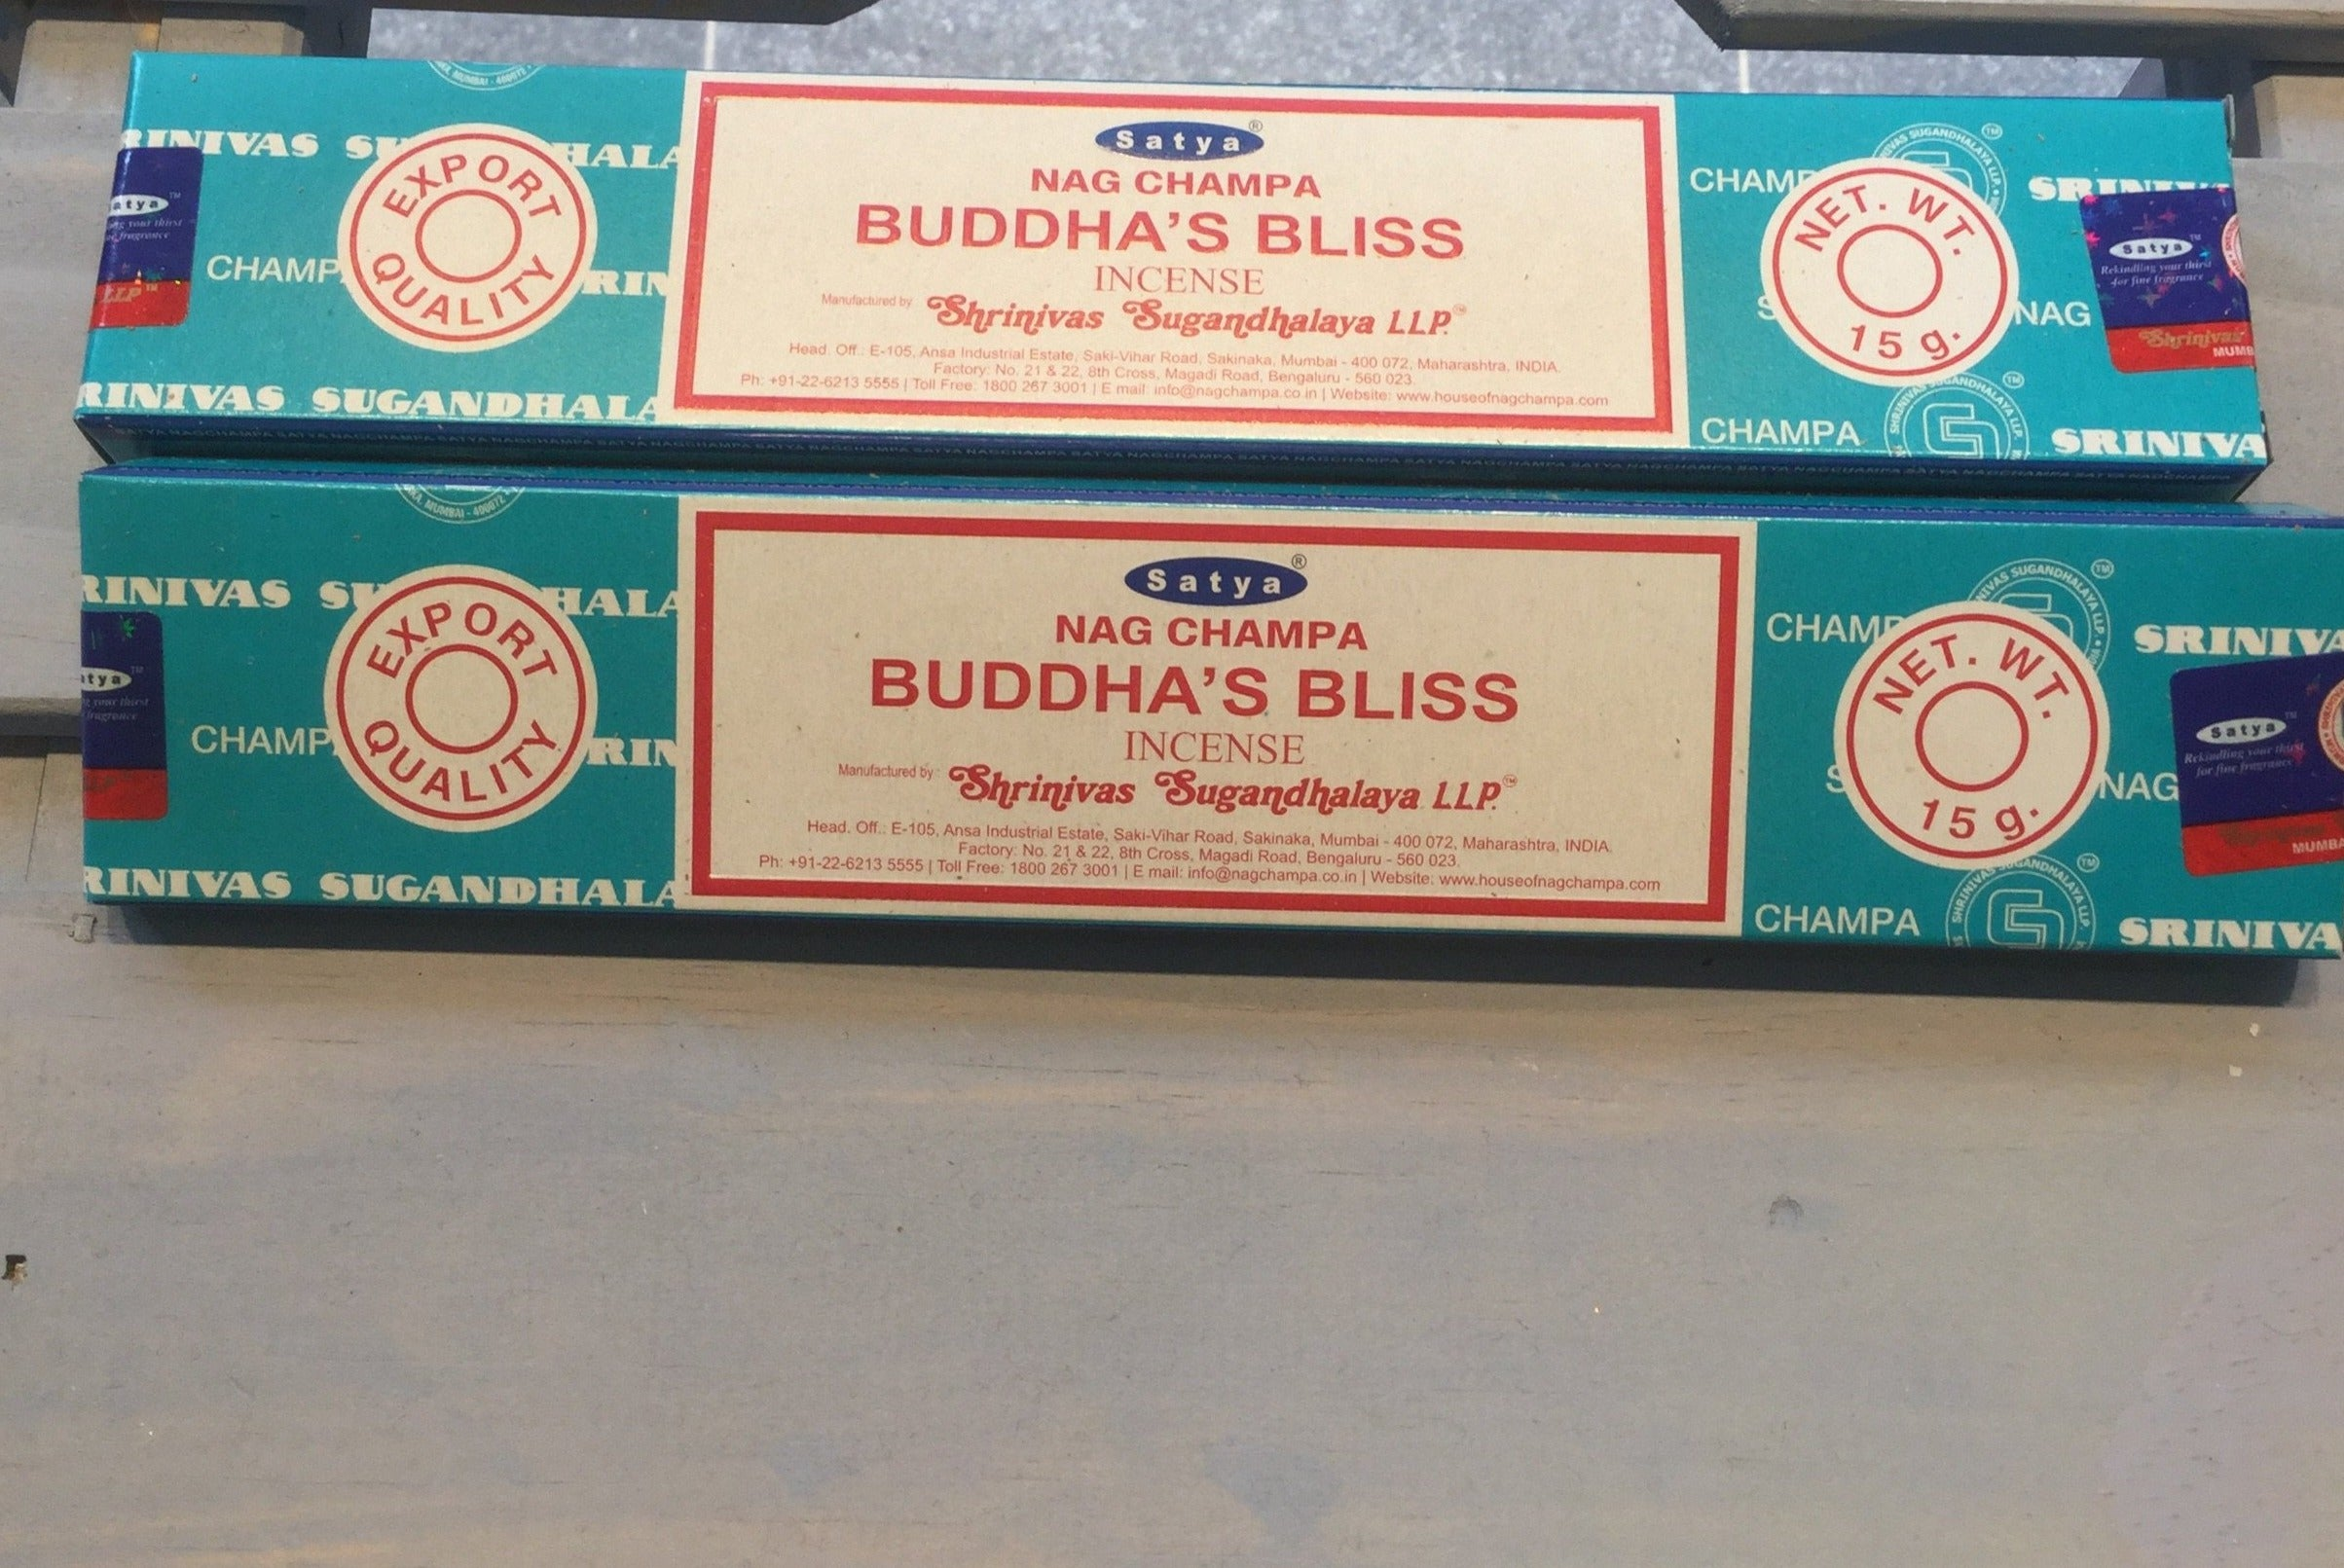 Satya Buddha's Bliss Incense 15g Pack